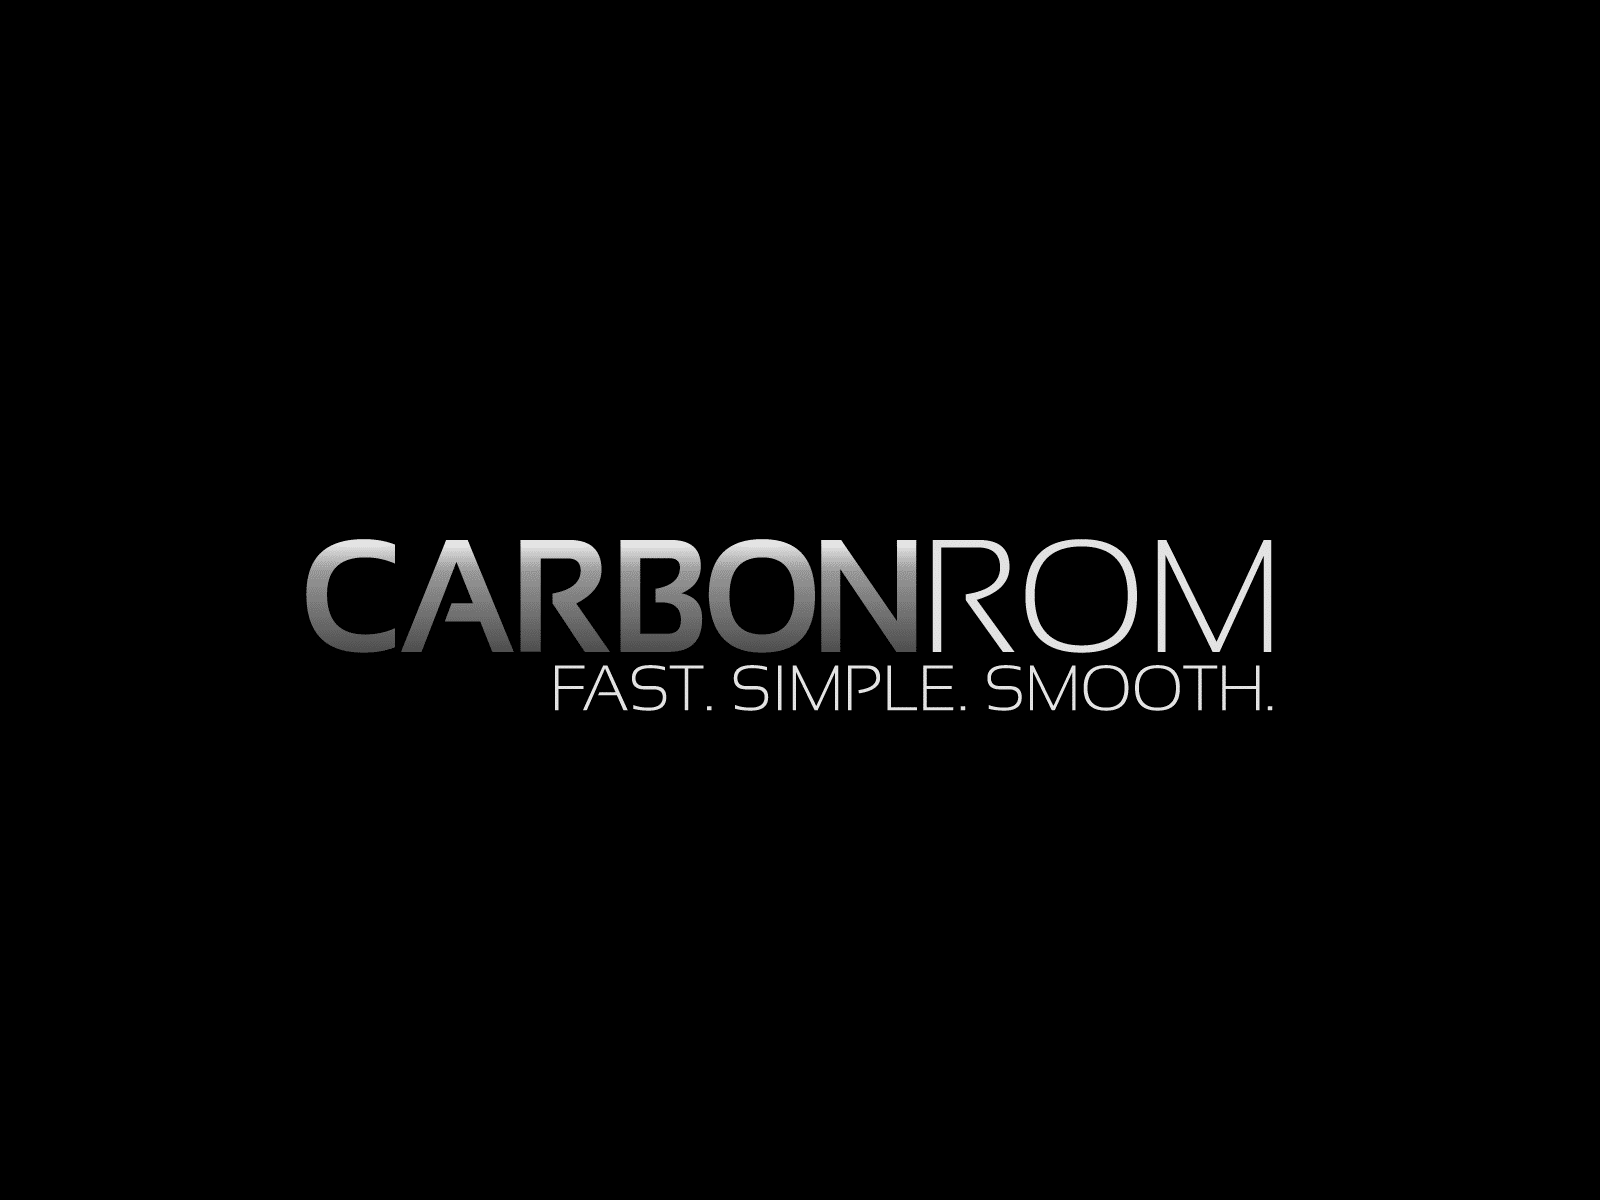 How To Install Carbon Android 7.1.1 ROM On Sony Xperia Z5 and Z3 1